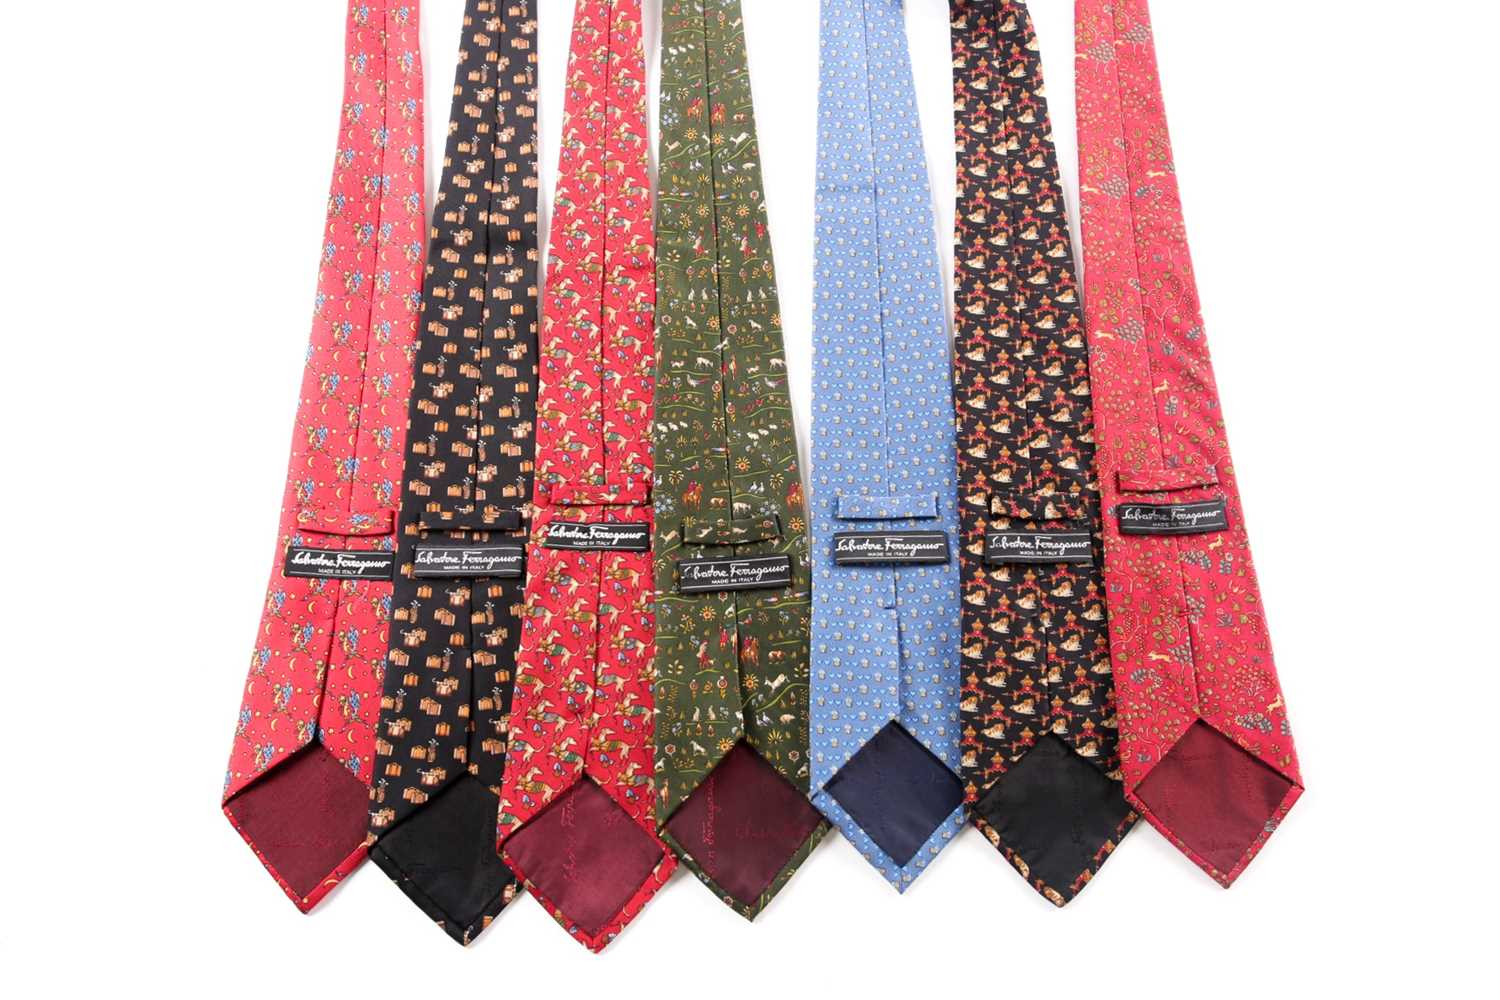 A group of seven Ferrogamo silk ties, various designs, in blue, red, green, and black silk. (7) - Image 2 of 2